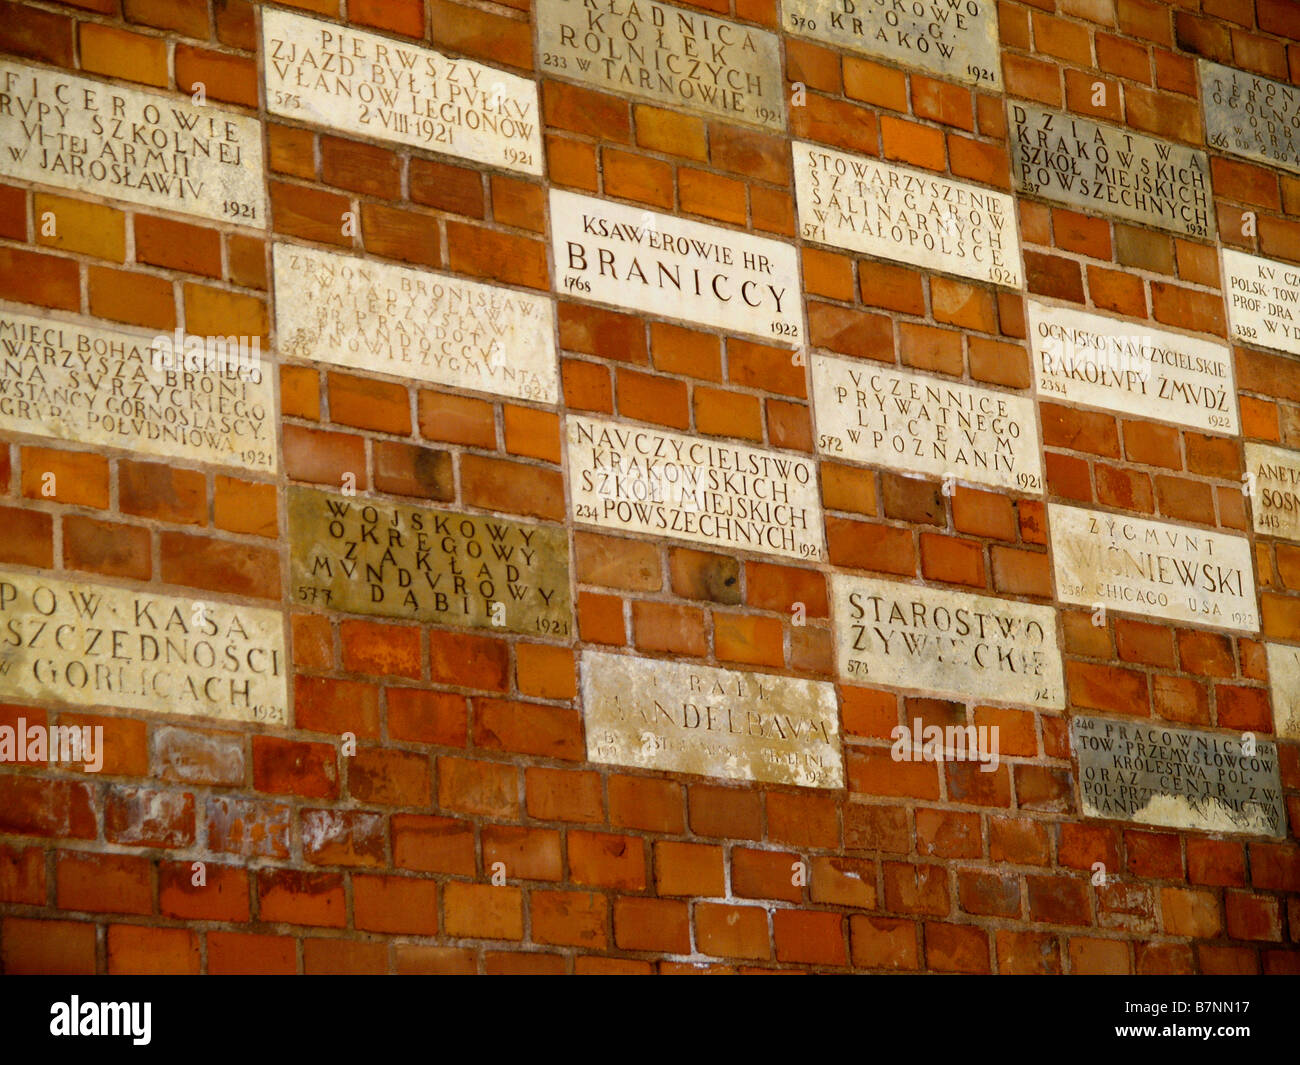 Blocks etched with names of sponsors of Wawel castle reconstruction and renovation efforts in Krakow, Poland. - Stock Image